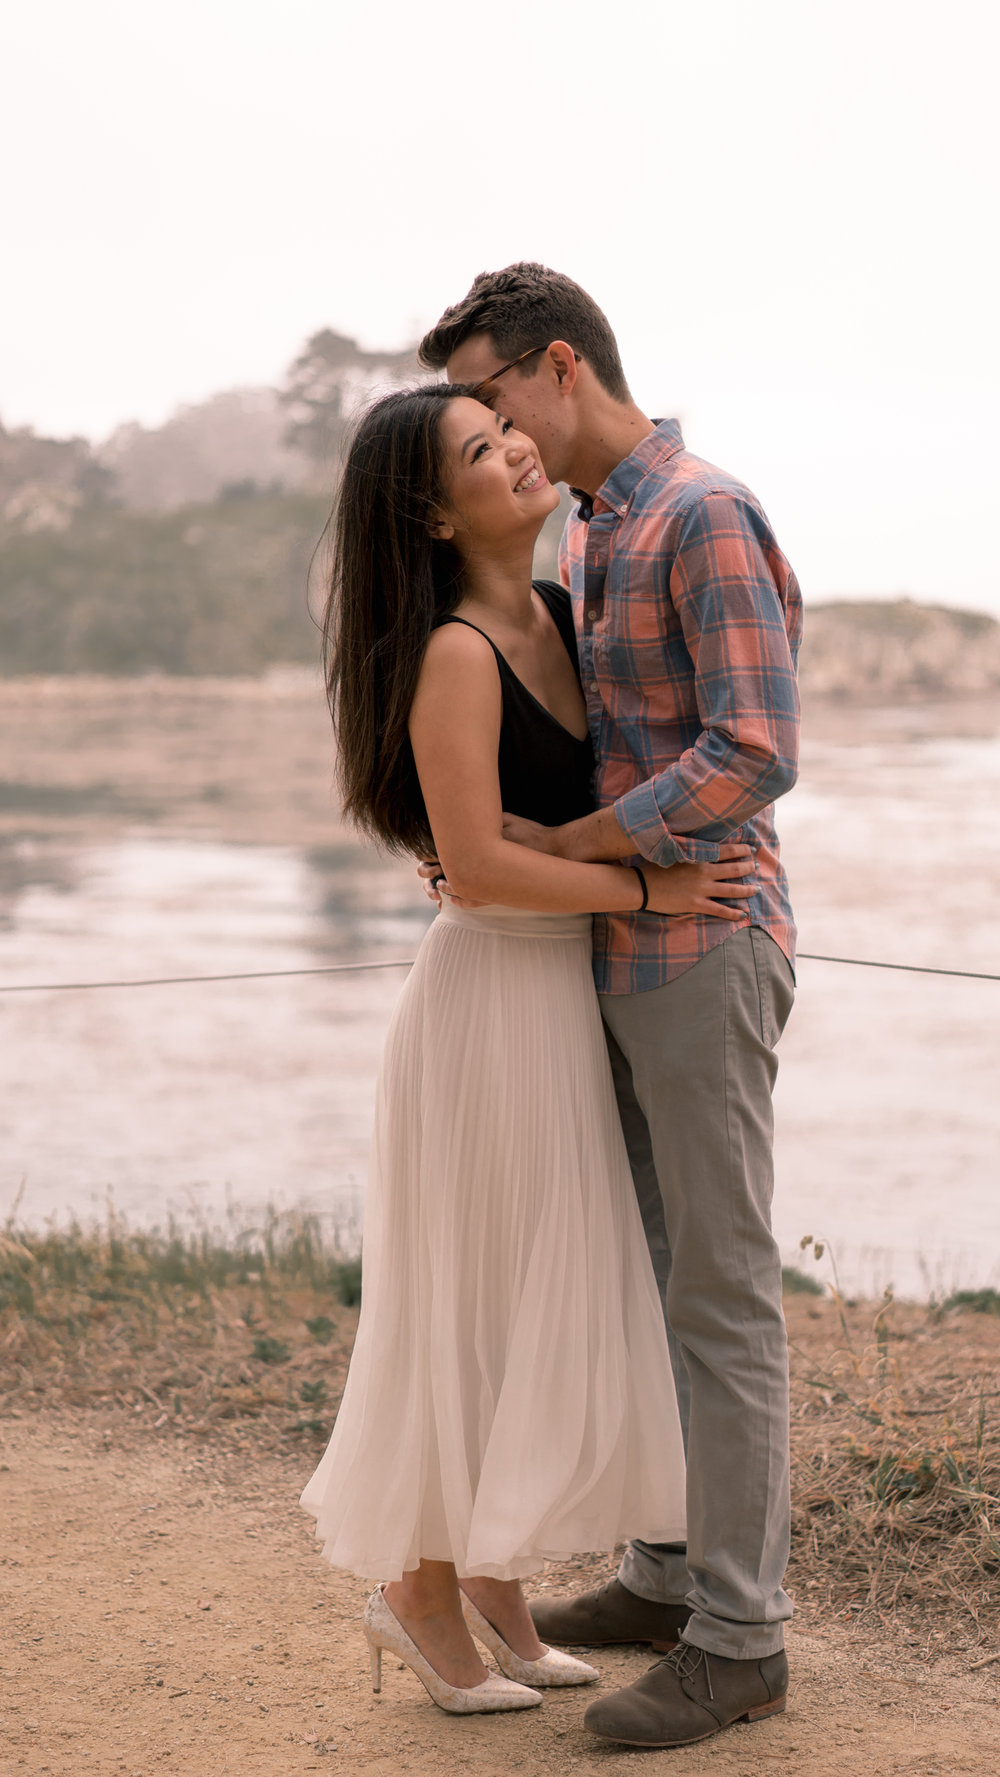 0604+Andrew+and+Yen+Engagement+--+Big+Sur-94.jpg